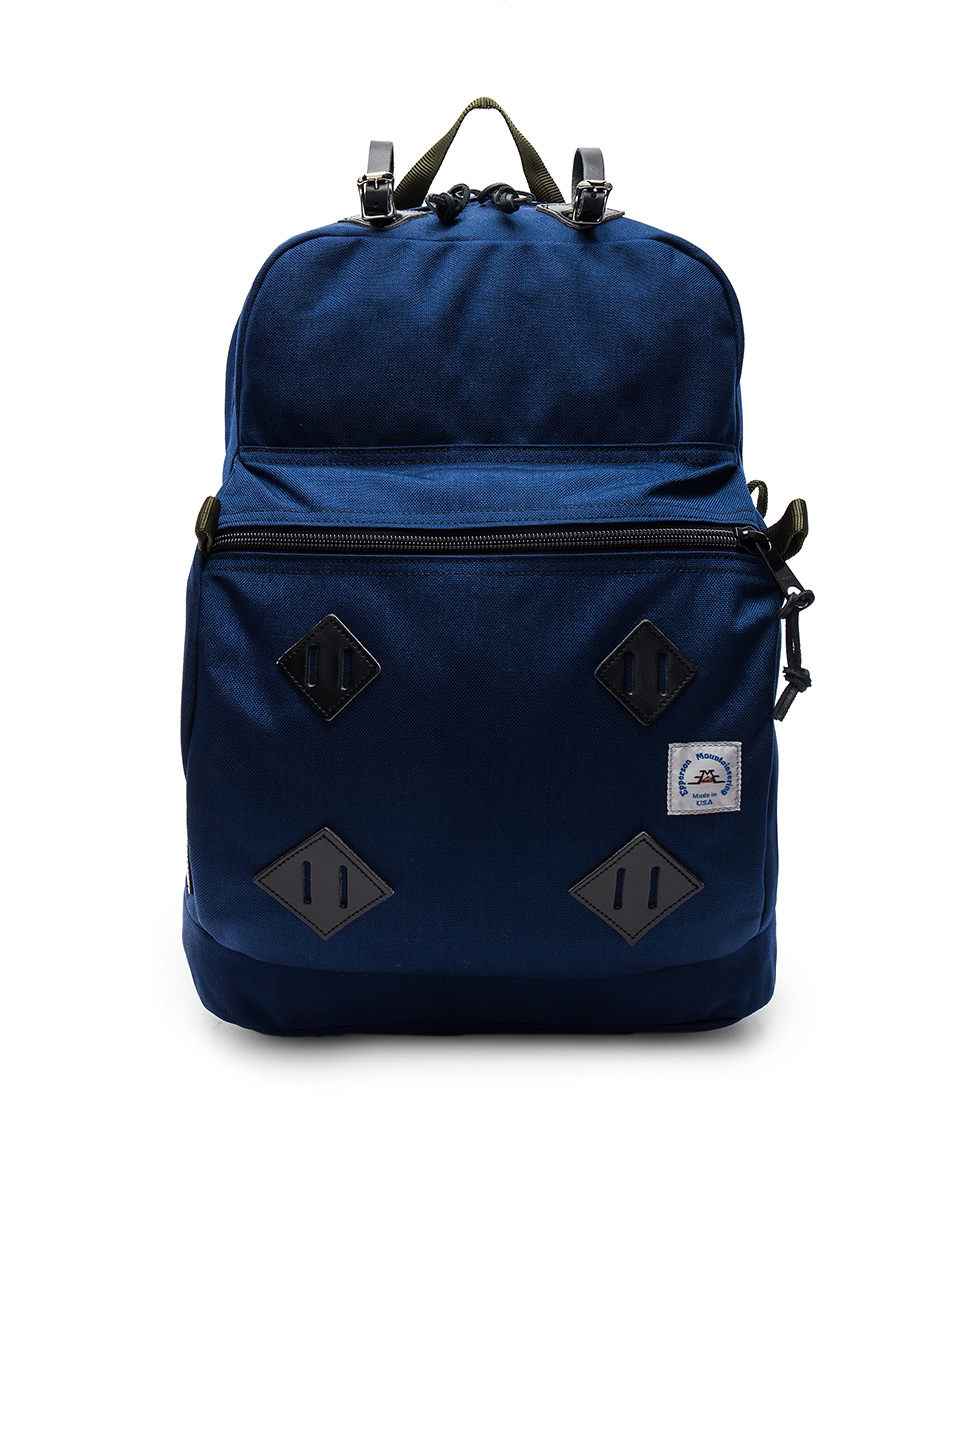 Leather Patch Day Pack by Epperson Mountaineering